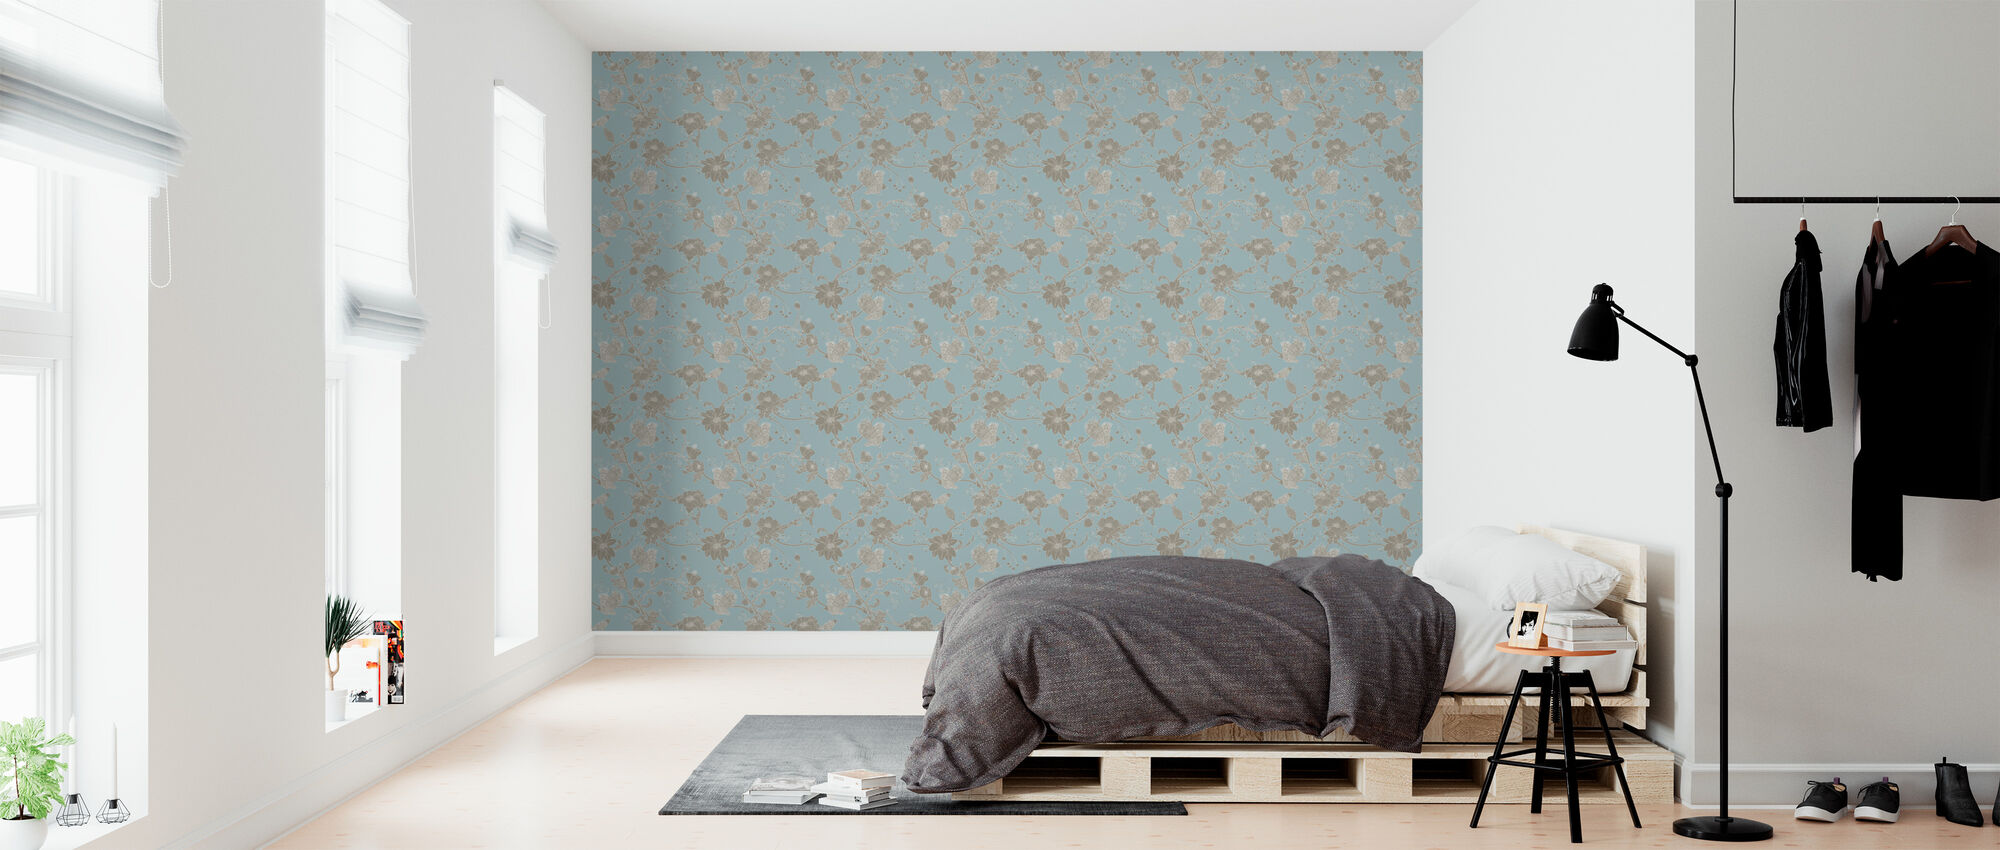 Botanica - Turquoise - Wallpaper - Bedroom